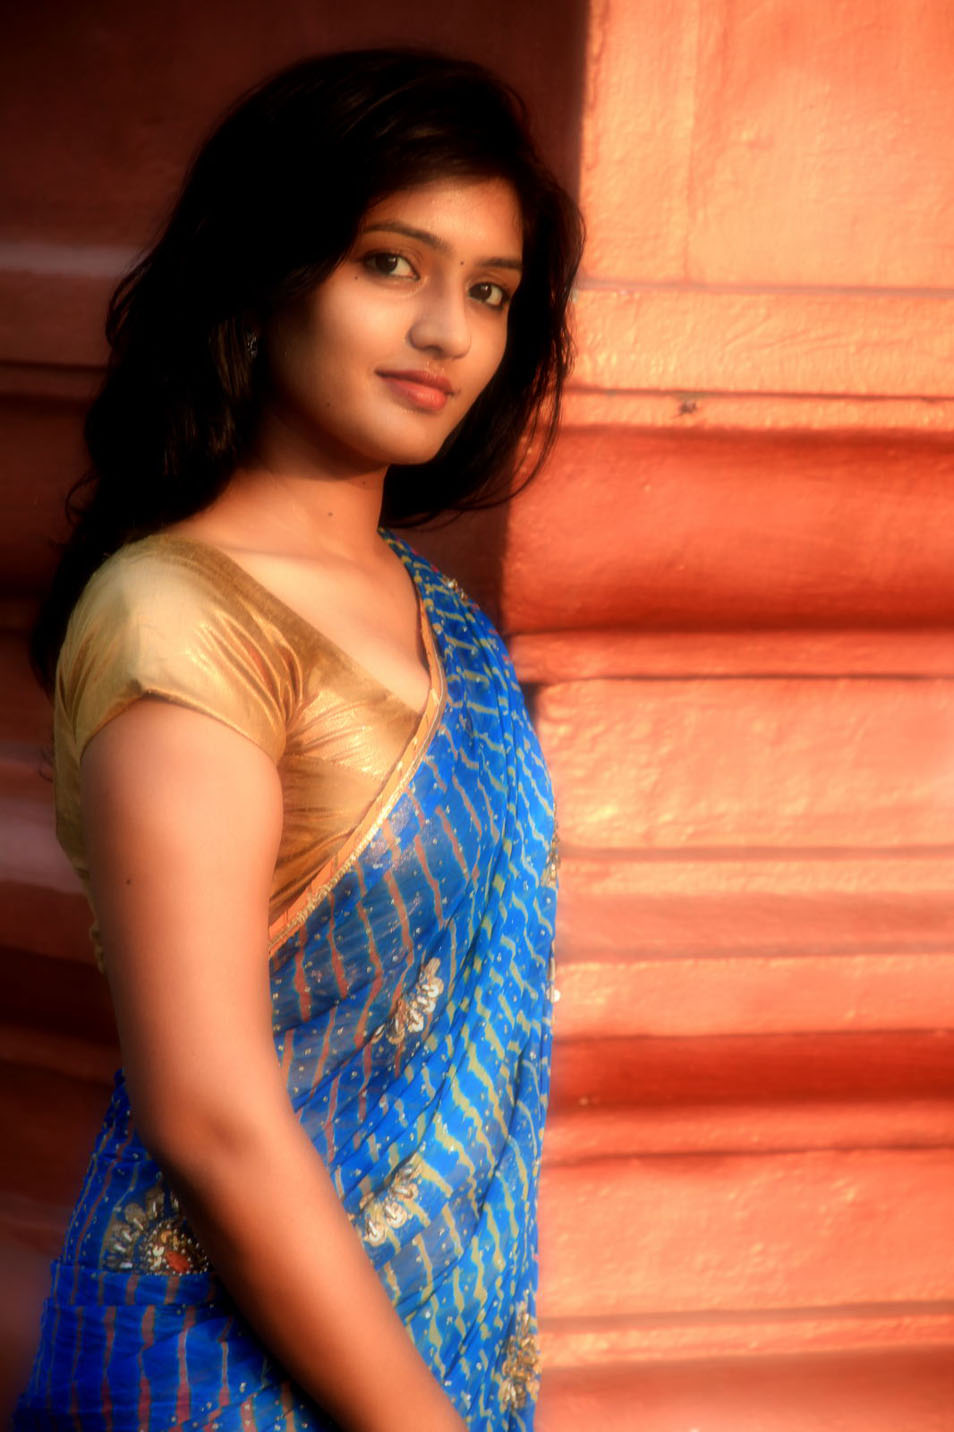 Images Of Actress Without Dress Wallpapers Kamistad Celebrity Pictures